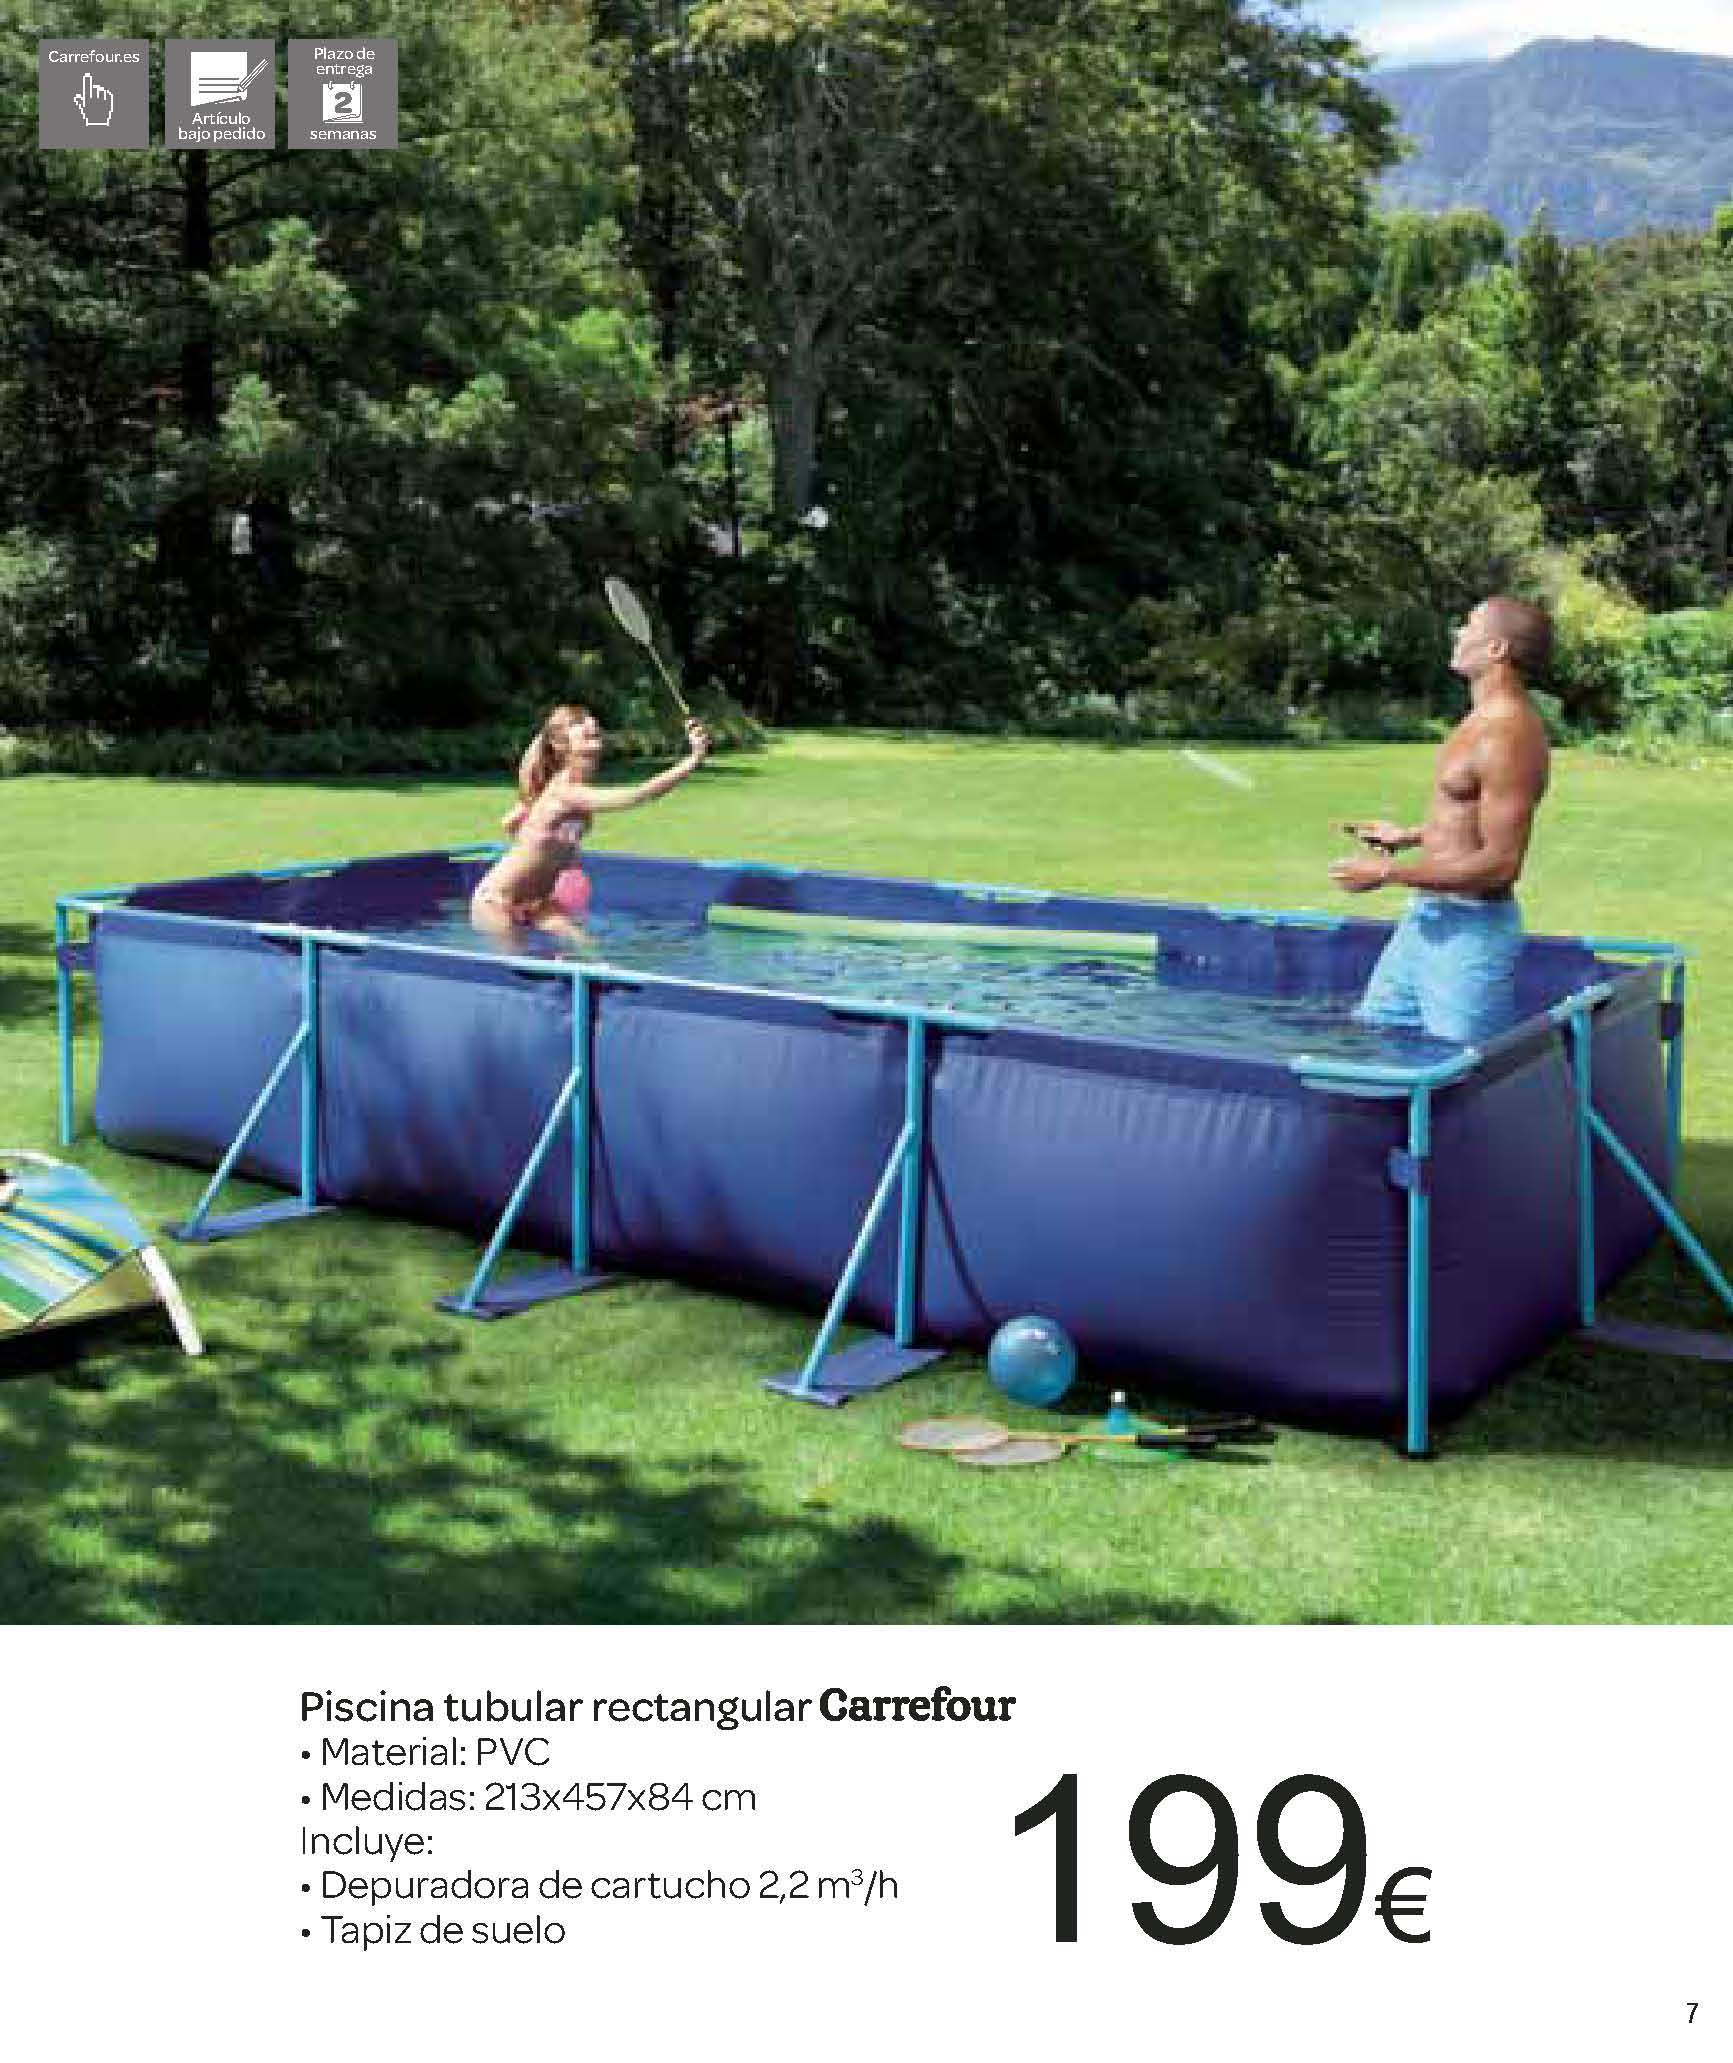 Ofertas carrefour for Suelo piscina carrefour